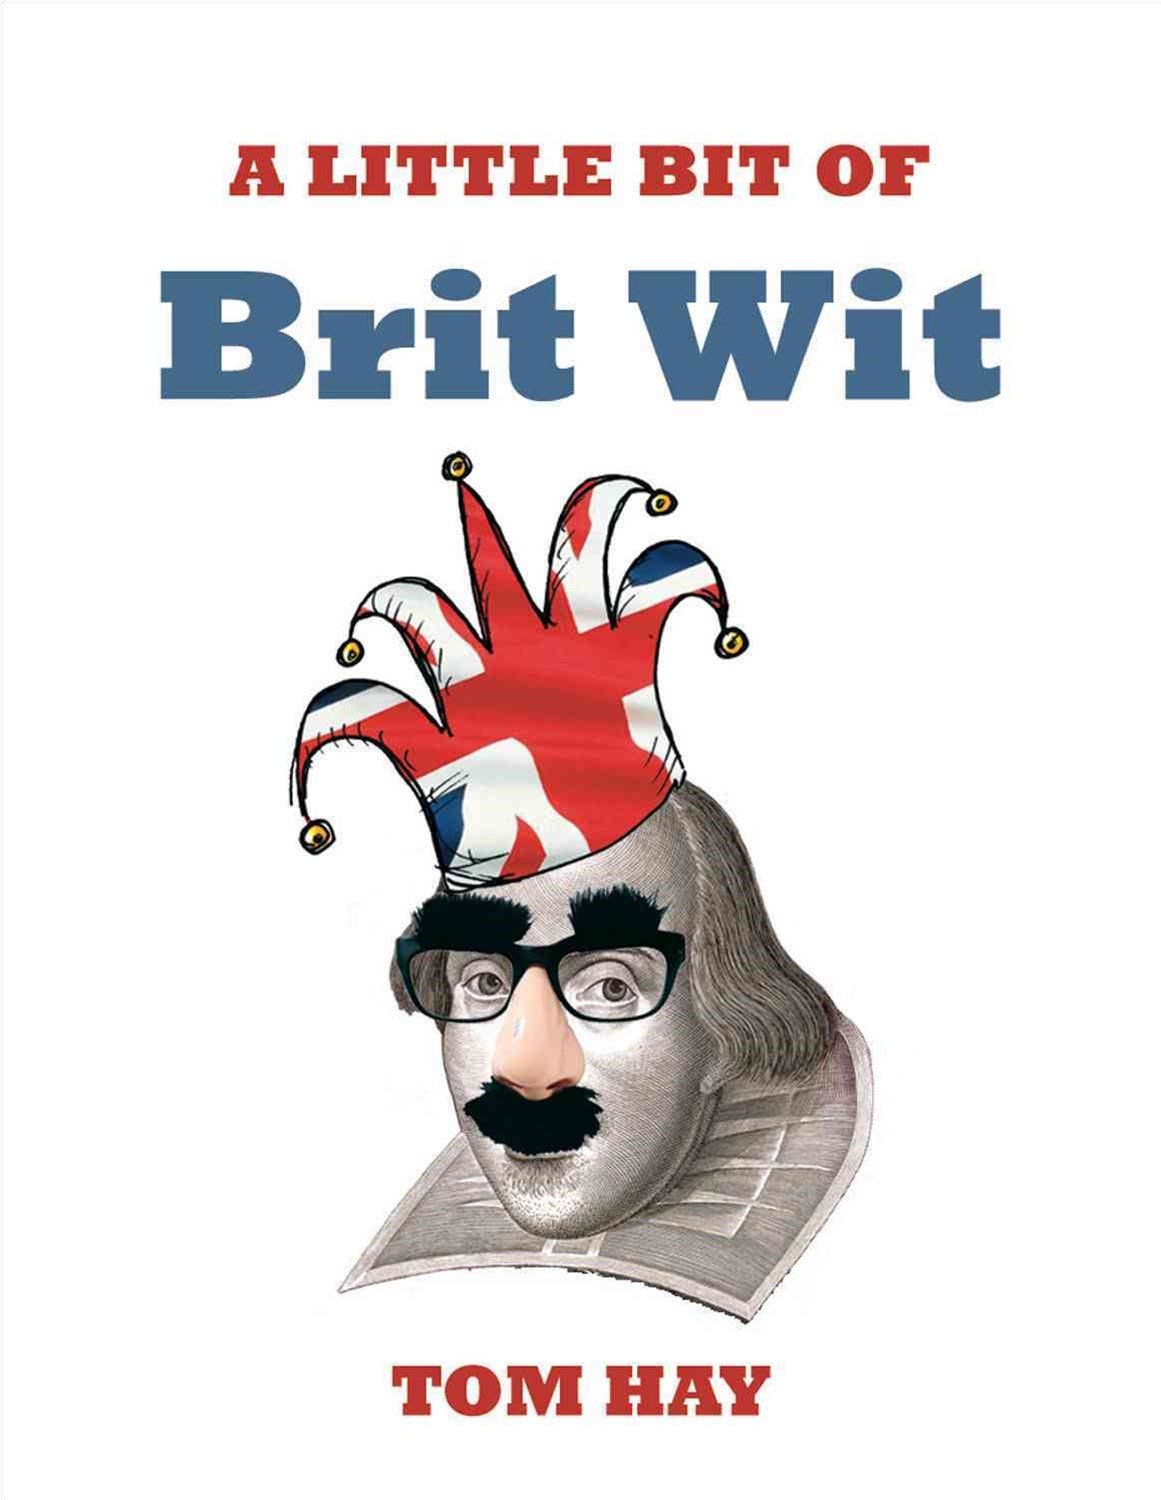 Little Bit of Brit Wit